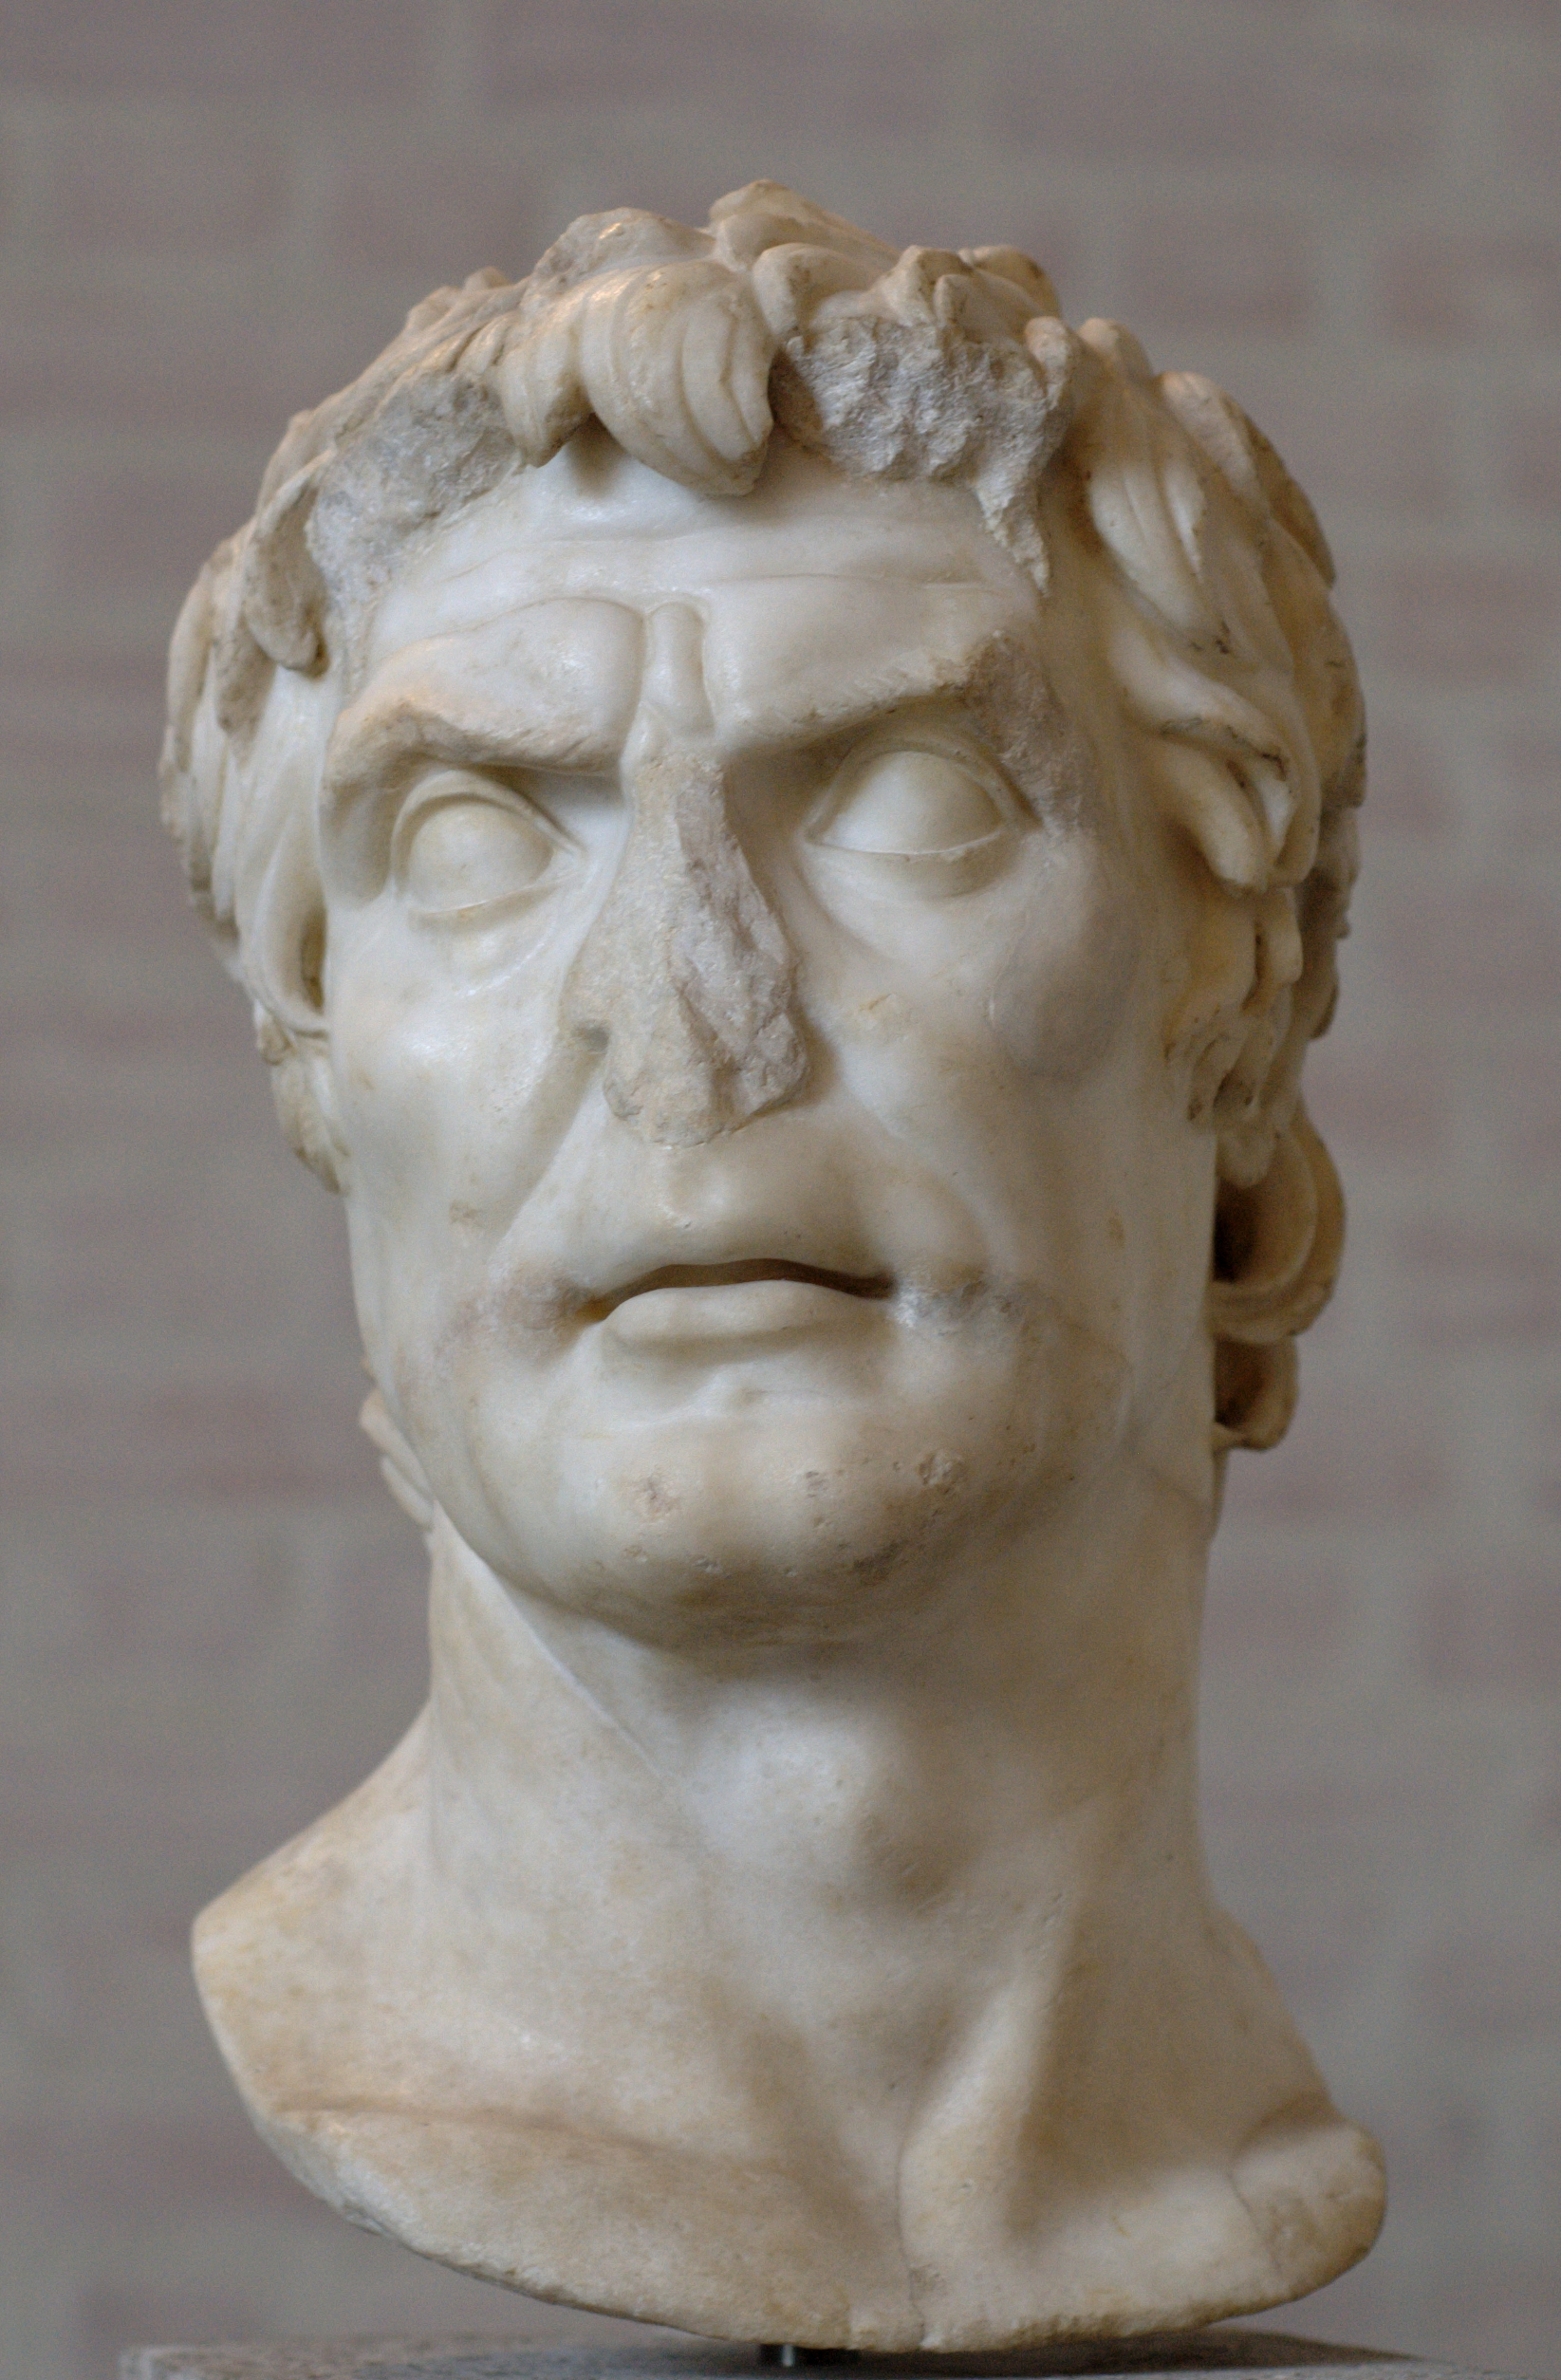 the life and career of julius caesar Mark antony: early life and alliance with julius caesar  marcus antonius was born in rome in 83 bc, the son of an ineffective praetor (military commander).